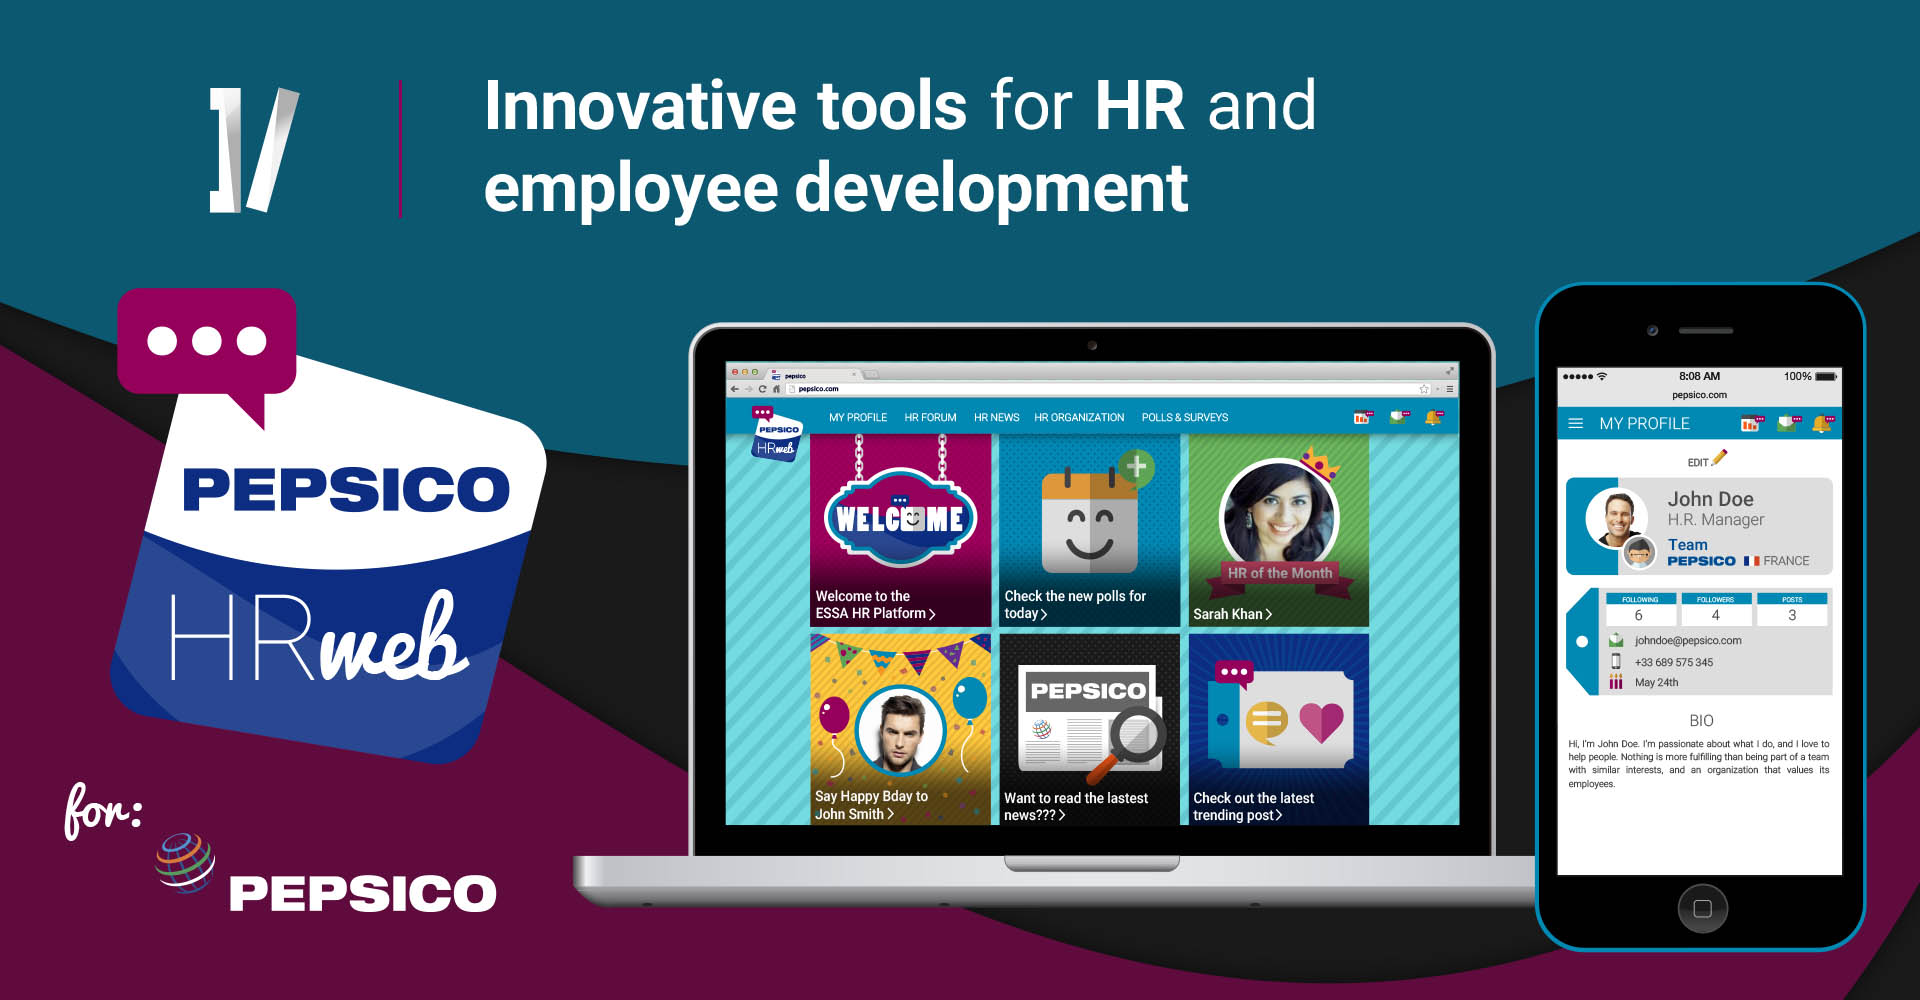 HR and employee development tools - pepsi